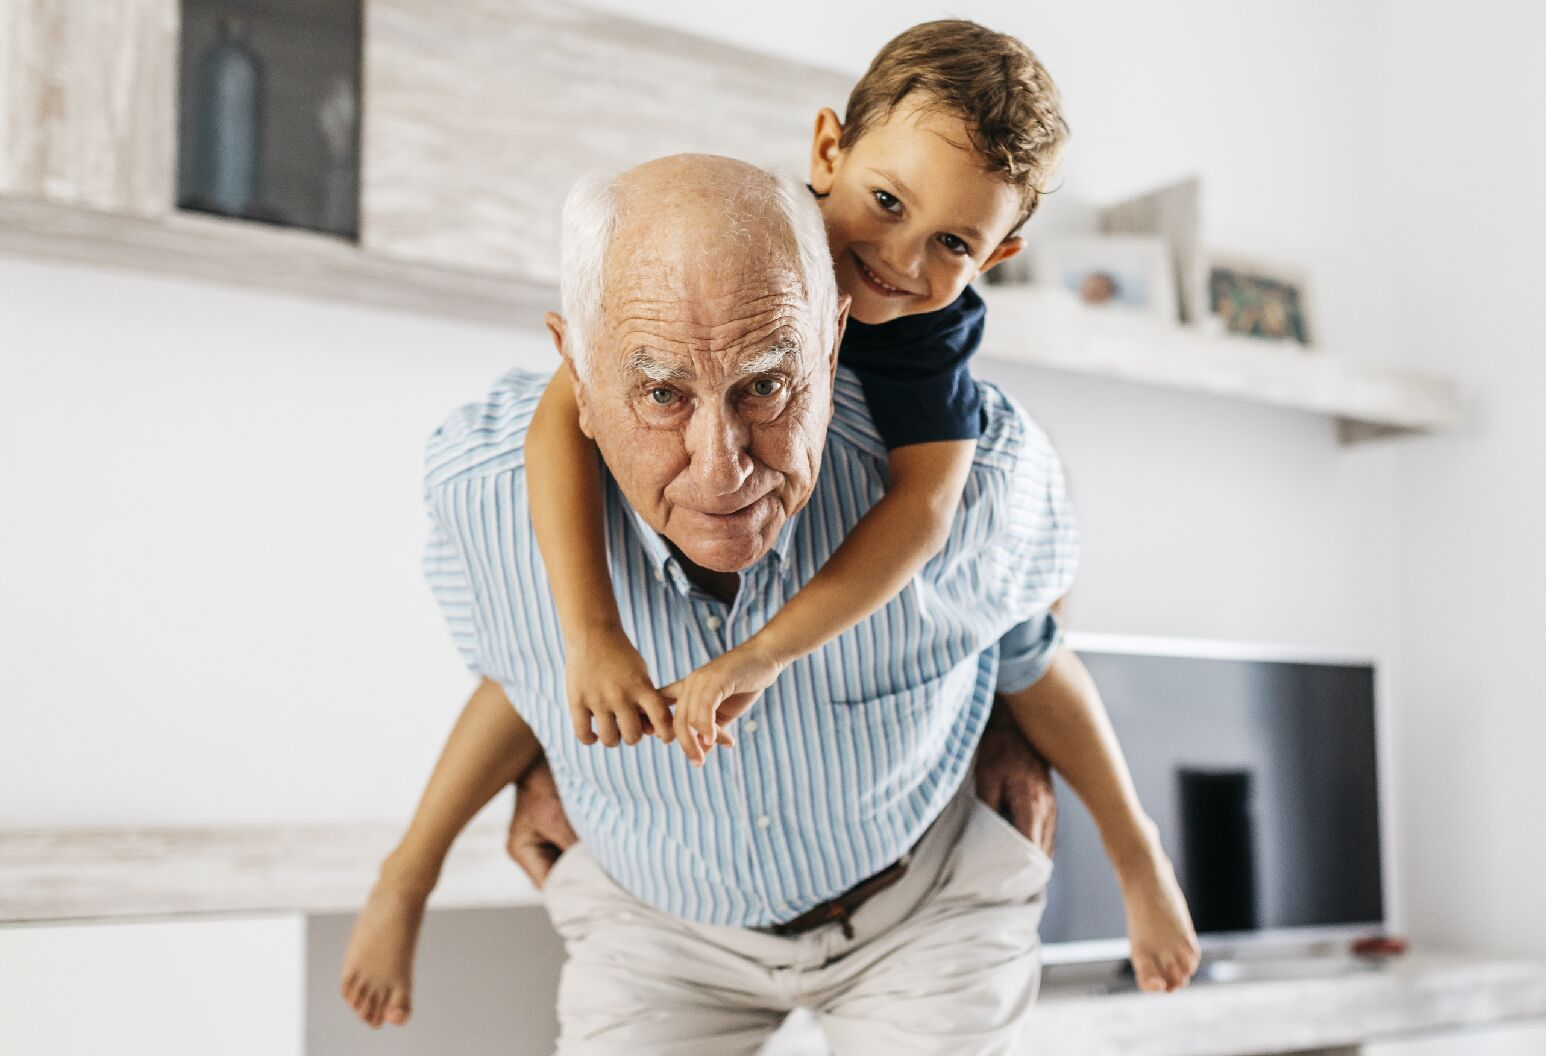 Elderly man carrying a young boy on his back.